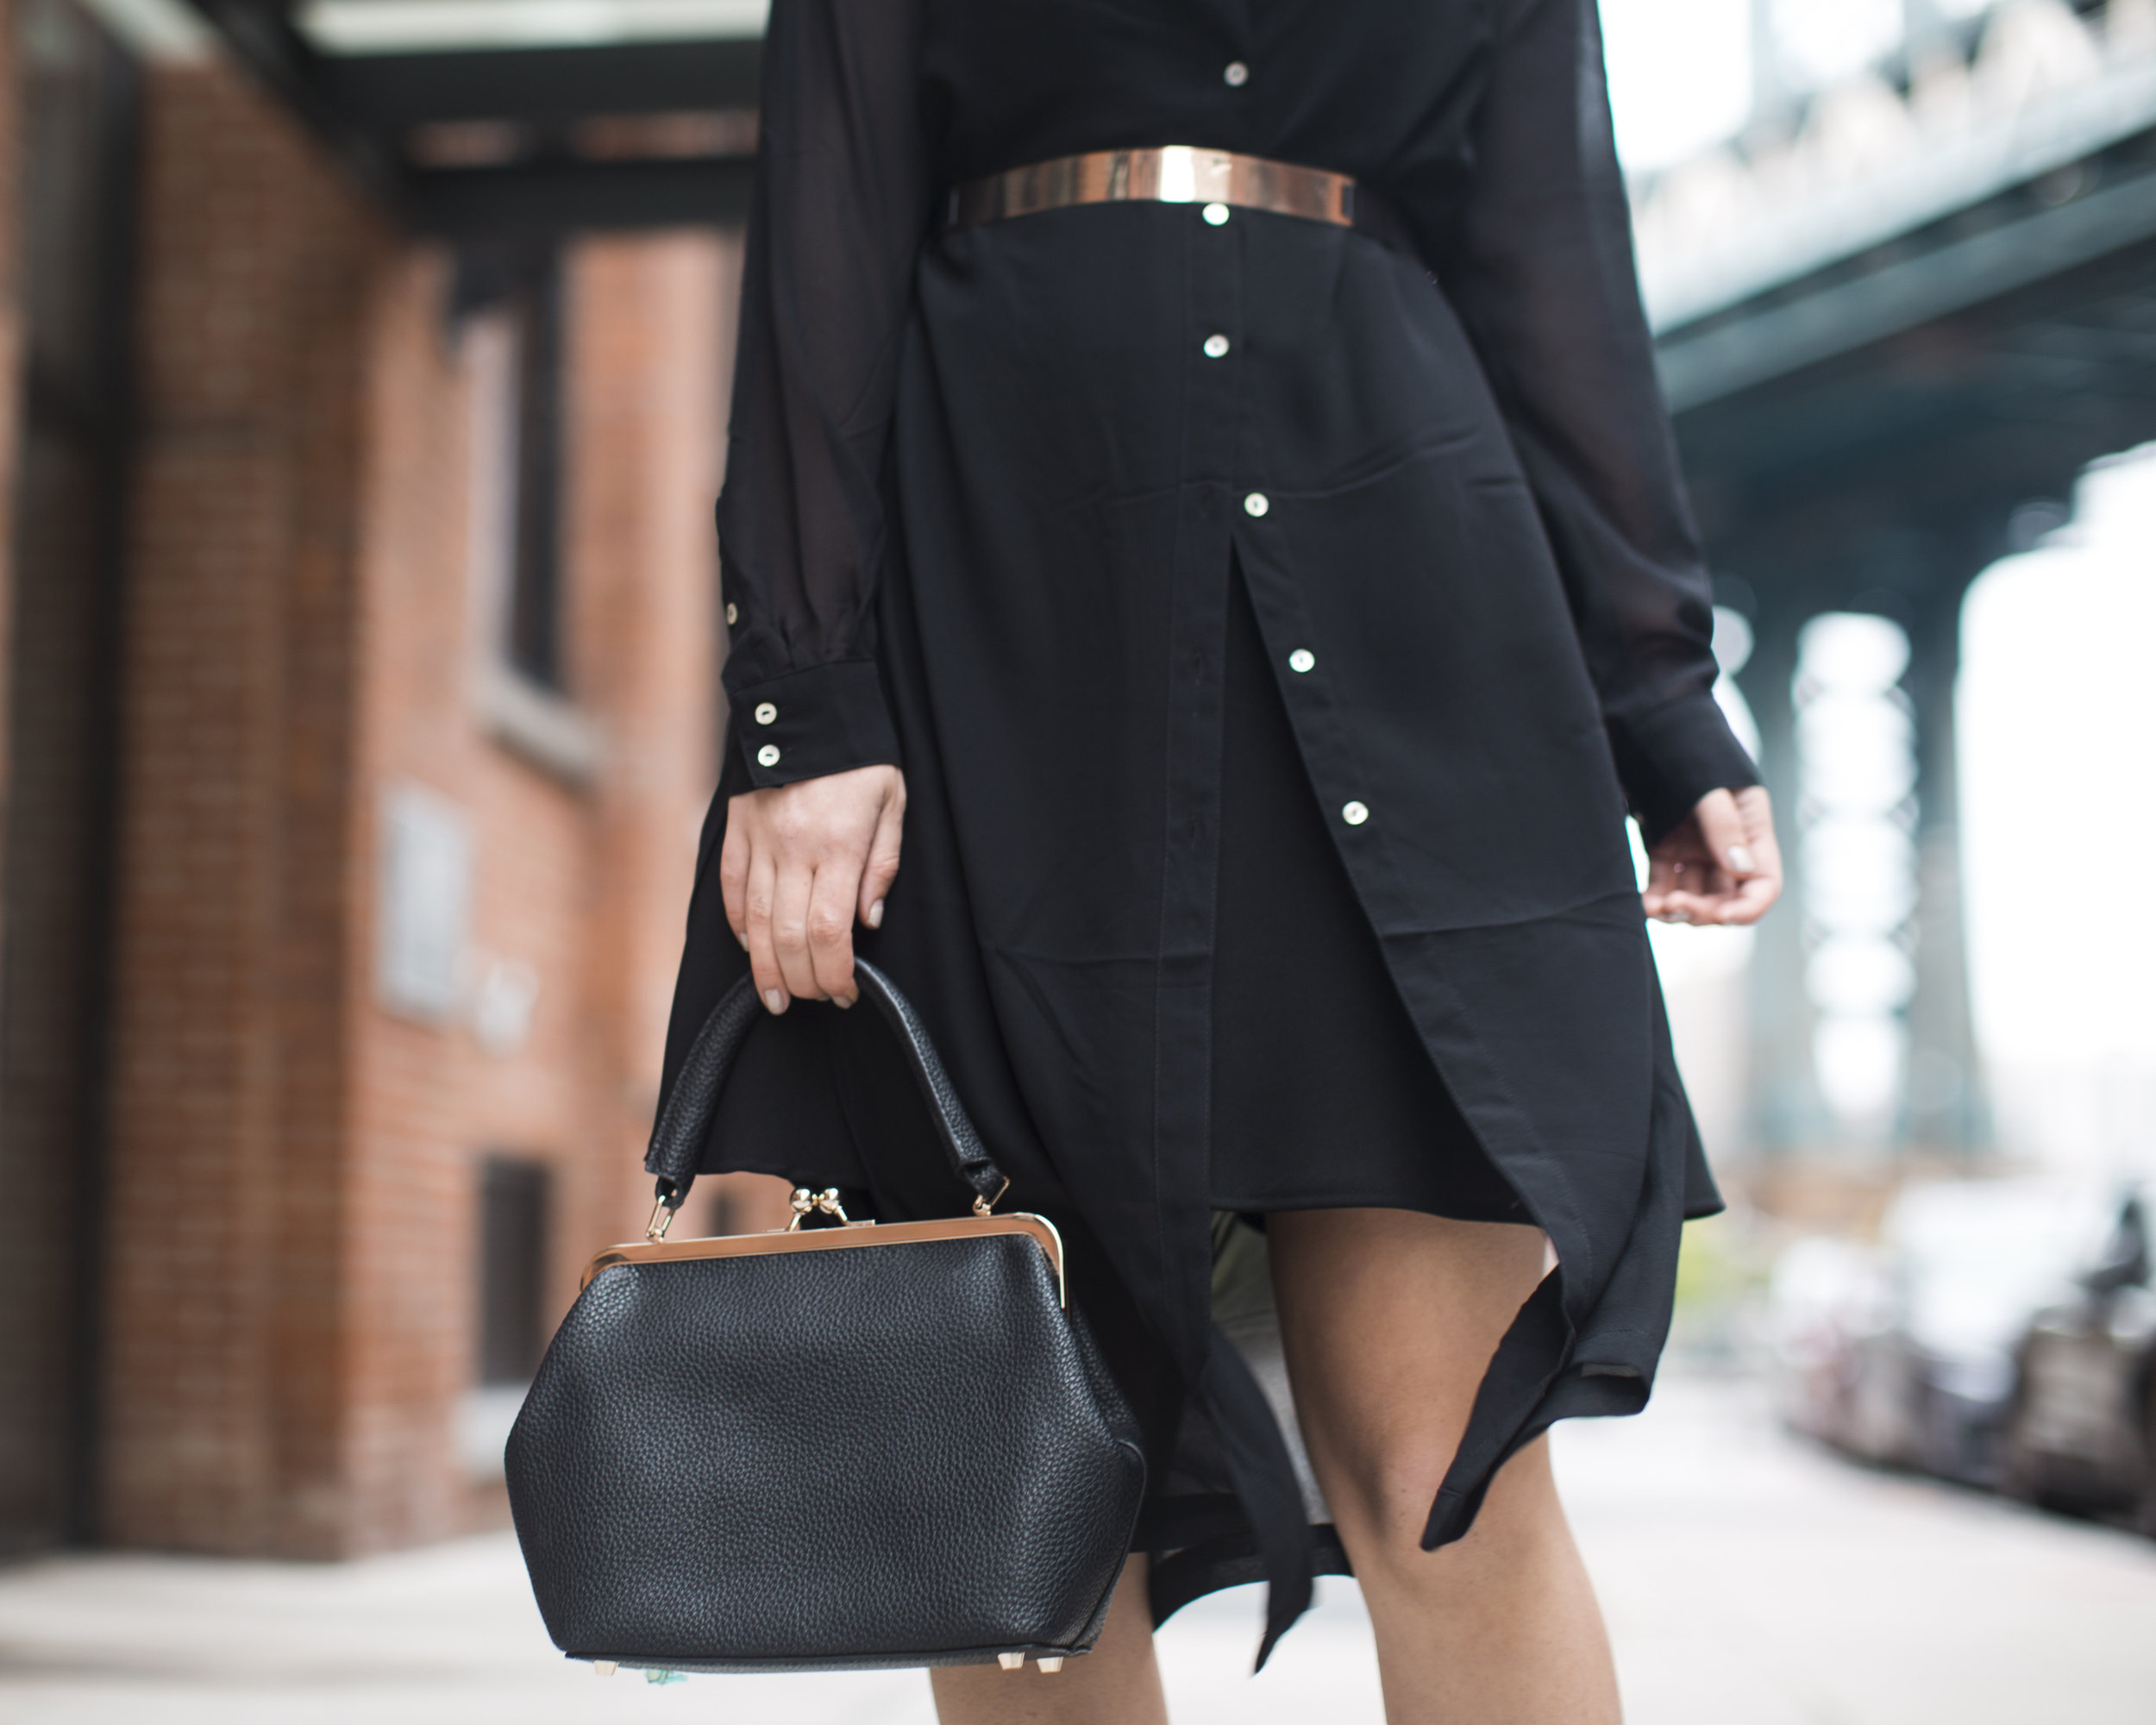 Gold Ribbon Pendant Leibish and Co. Diamonds Louboutins & Love Fashion Blog Esther Santer NYC Street Style Blogger Monochrome Mules Necklace Braid Hair Girl Women Shirt Dress All Black Red Lipstick Trendy Outfit Jewelry OOTD Inspo Wear Bag Inspo Shop.jpg